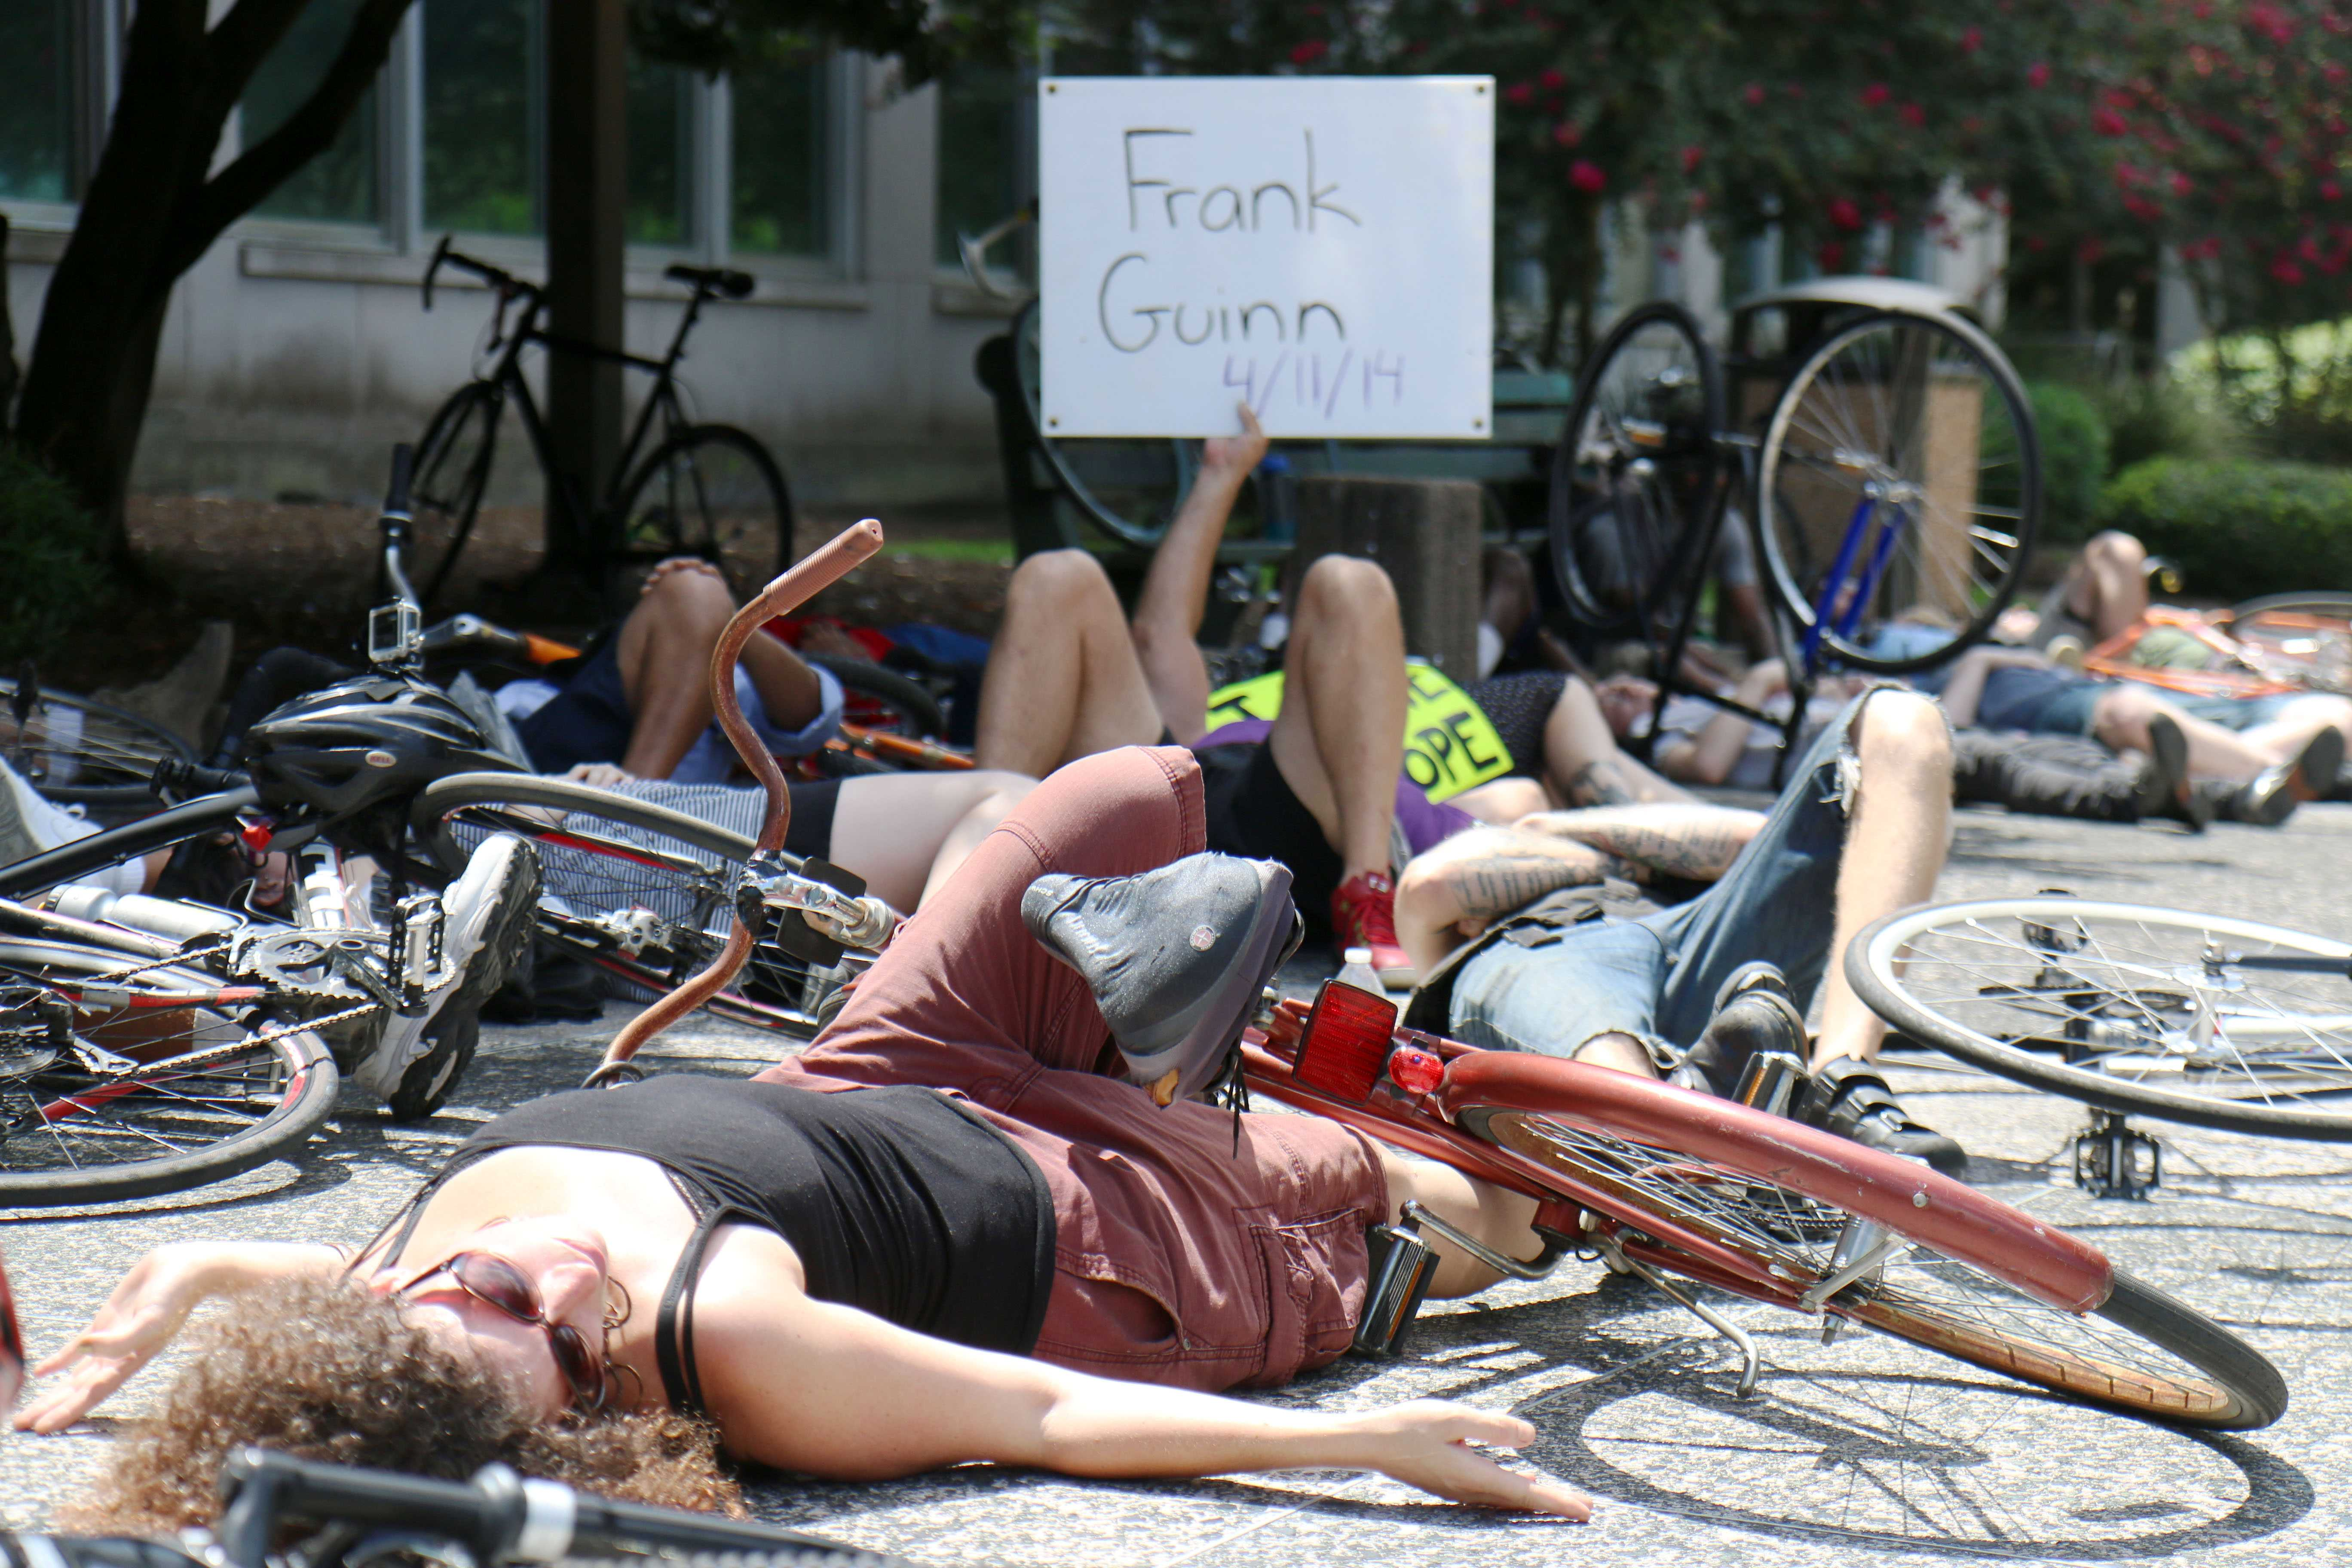 Cyclists prostrate themselves in front of City Hall as part of a die-in protest on July 23. This protest was part of a call for bicycle-friendly laws and infrastructure in the city of New Orleans and an overall awareness of cyclists' rights on the road.